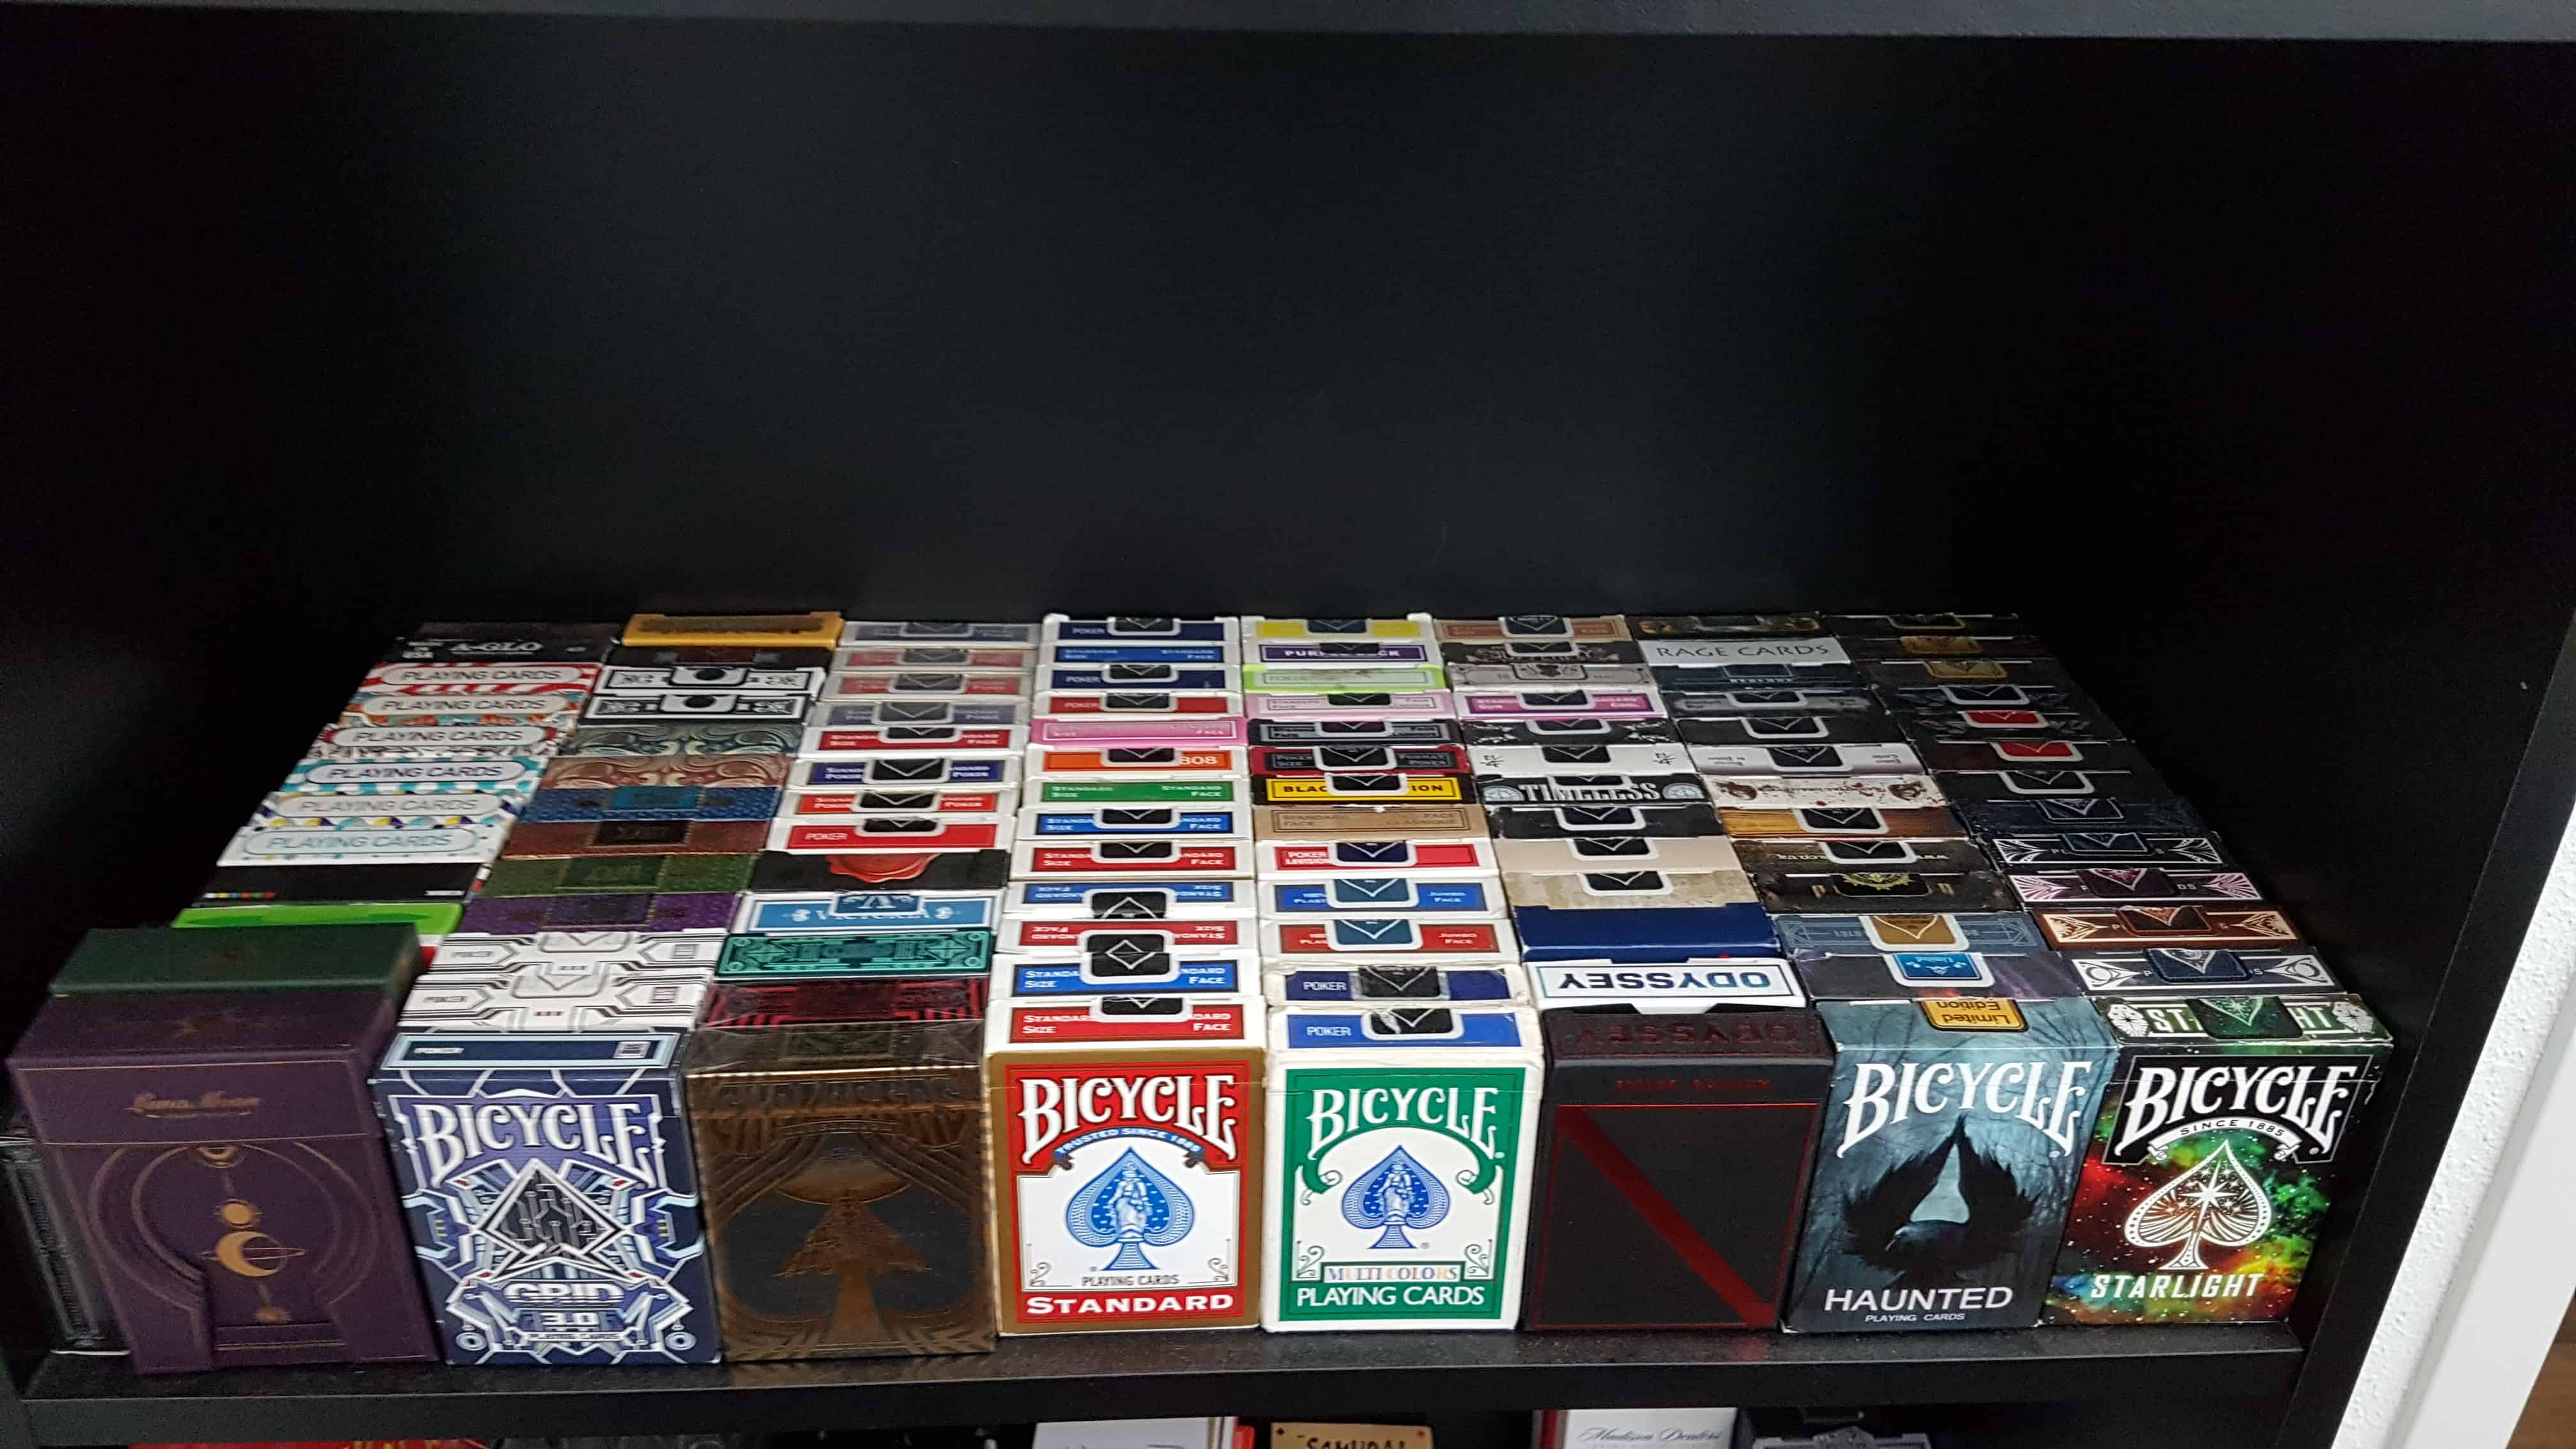 My current collection of over 900 decks and counting! When all of the decks arrive, I will be well o